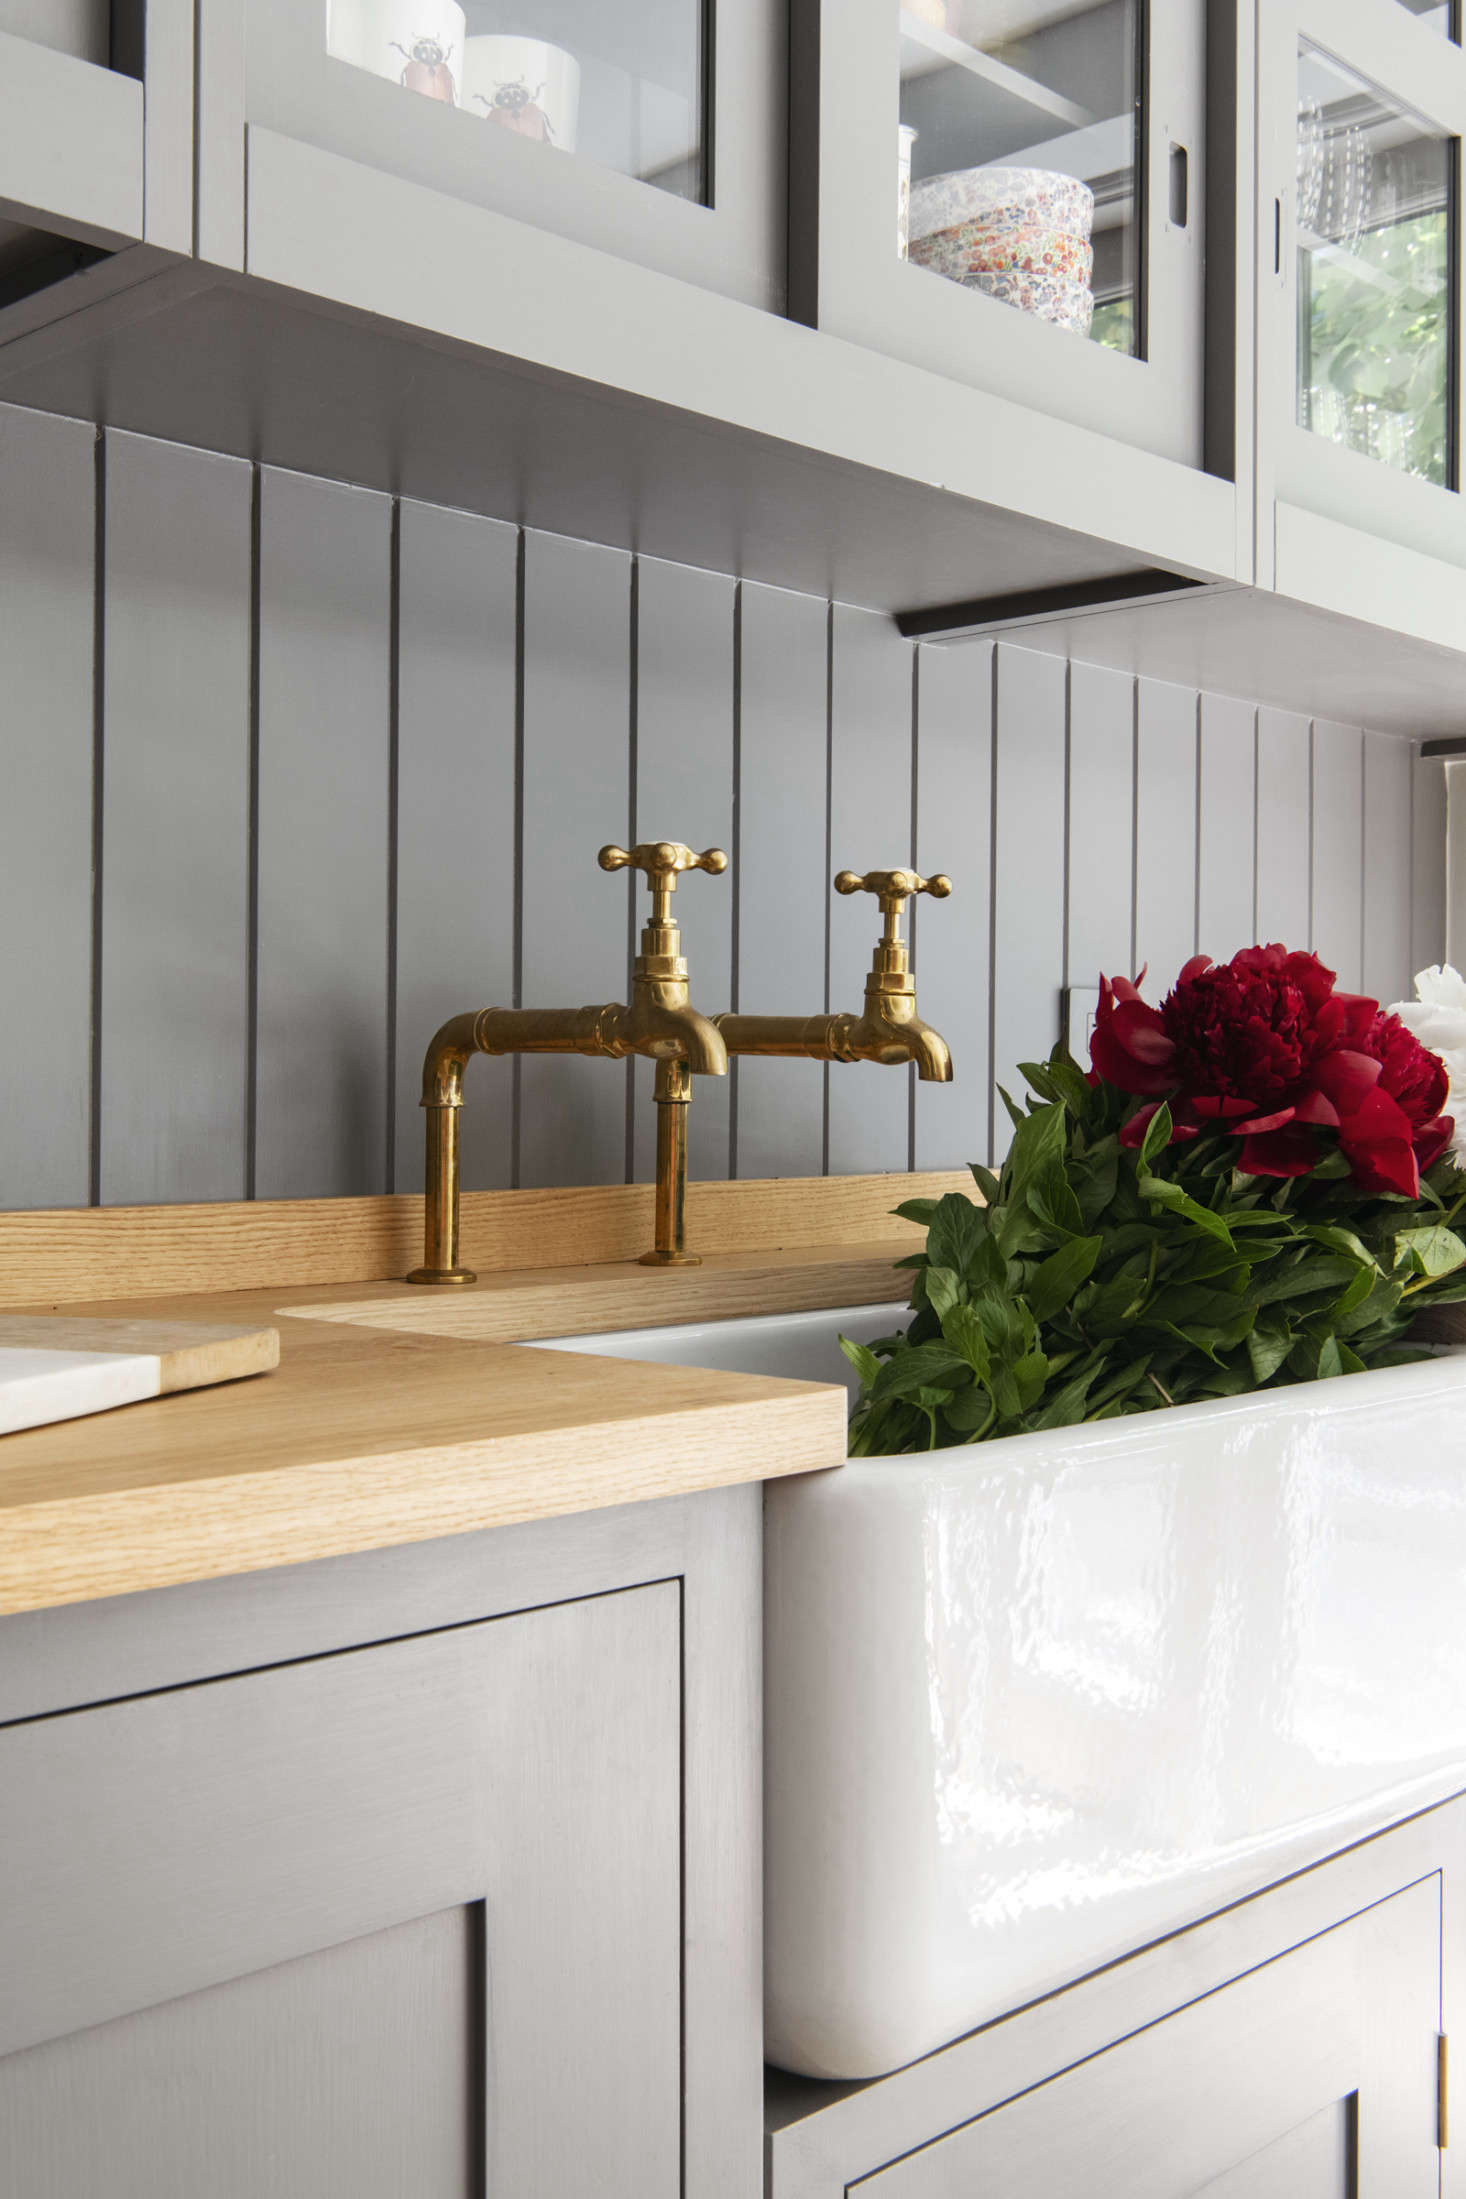 Barber Wilsons hot and cold taps in unlacquered brass and a Shaws Original farmhouse sink. The counter is Plain English oak butcher block.